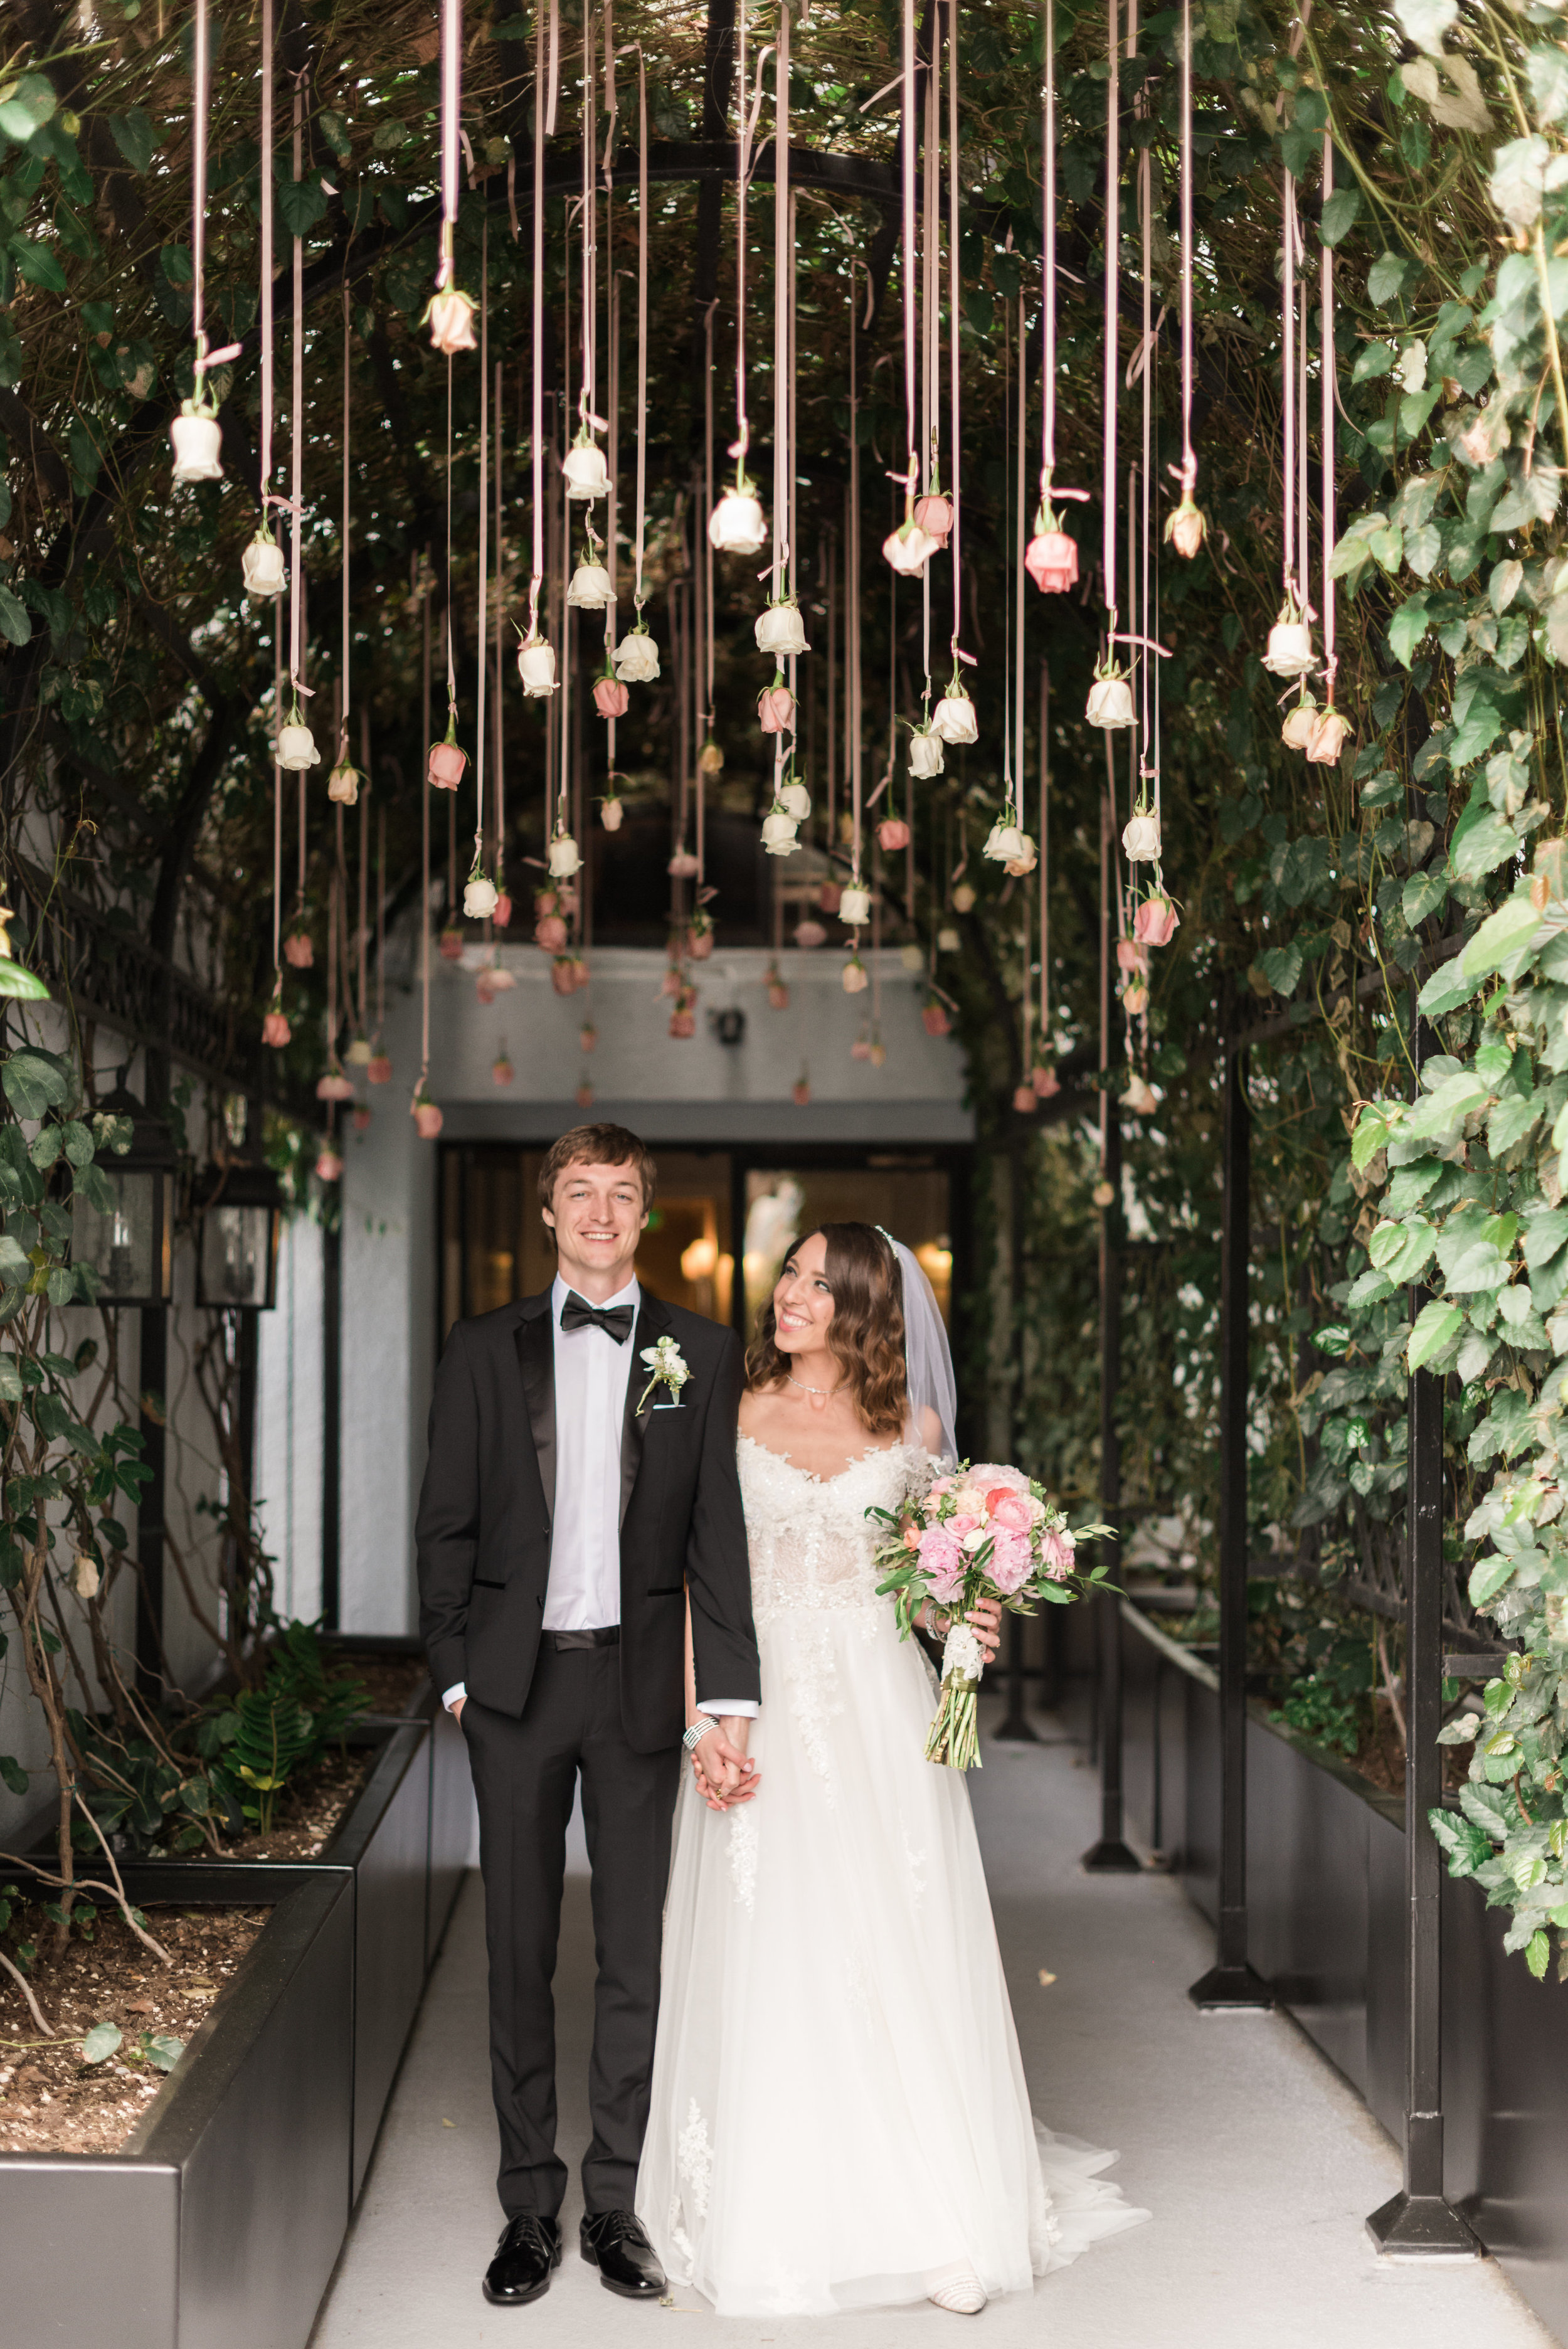 shadee and courtlan wedding with cluster events decor.jpg